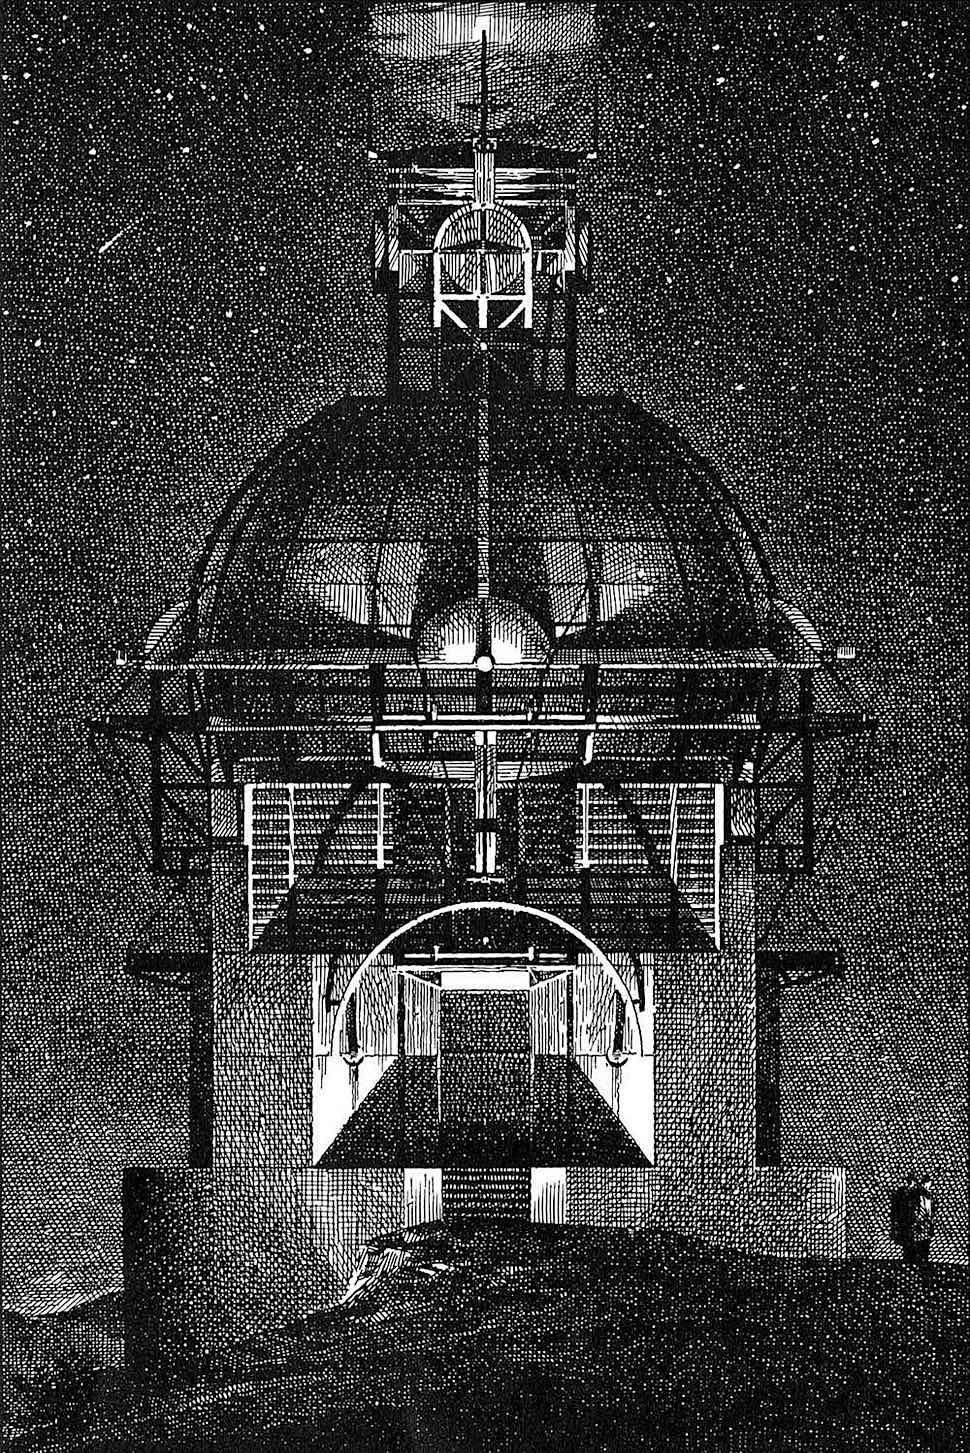 a Lebbeus Woods drawing of a night scene